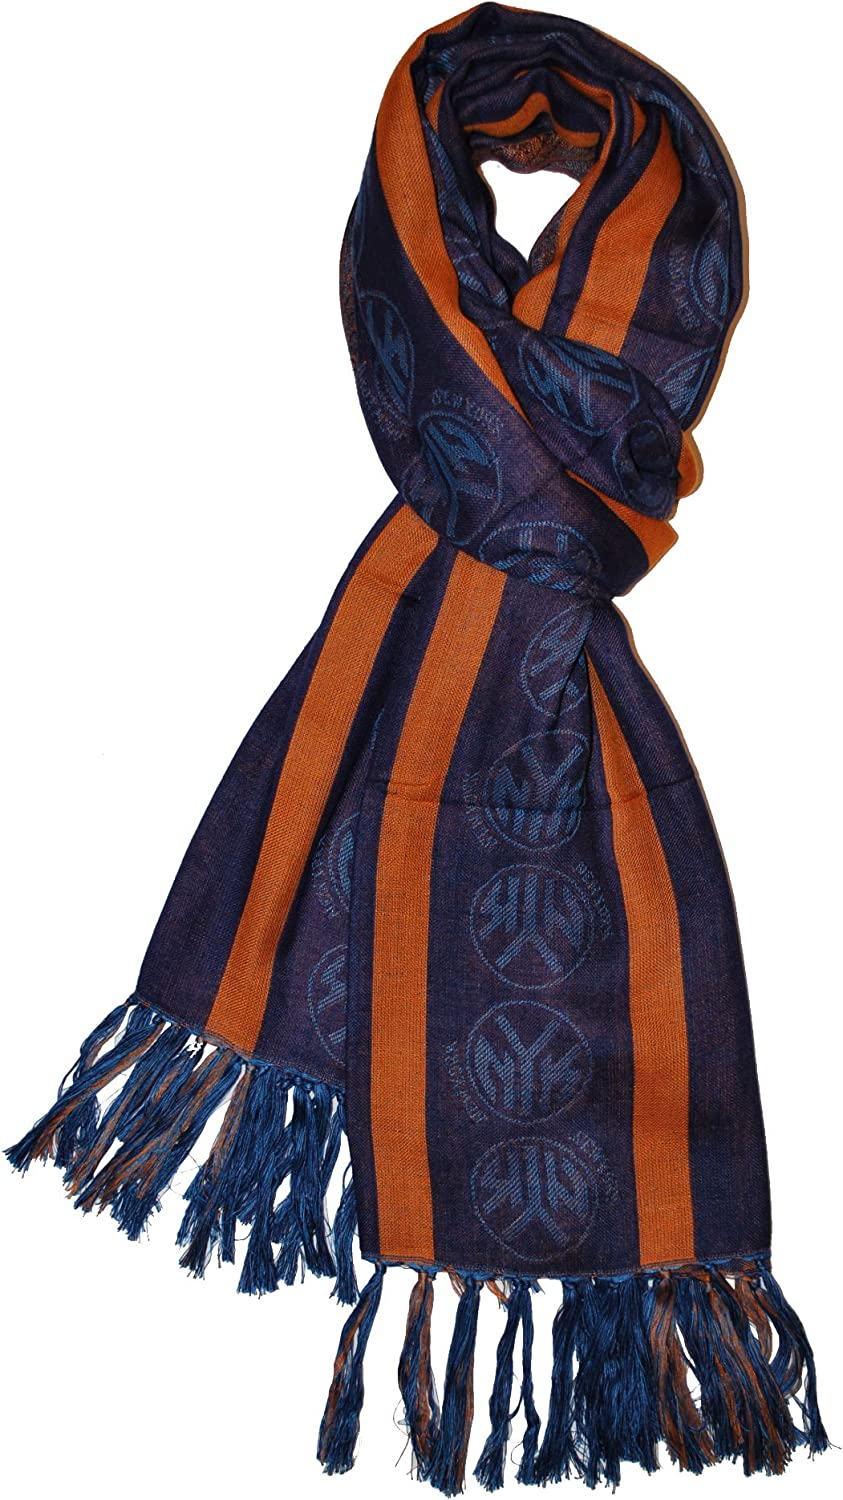 NBA New Some Max 44% OFF reservation York Knicks Scarf